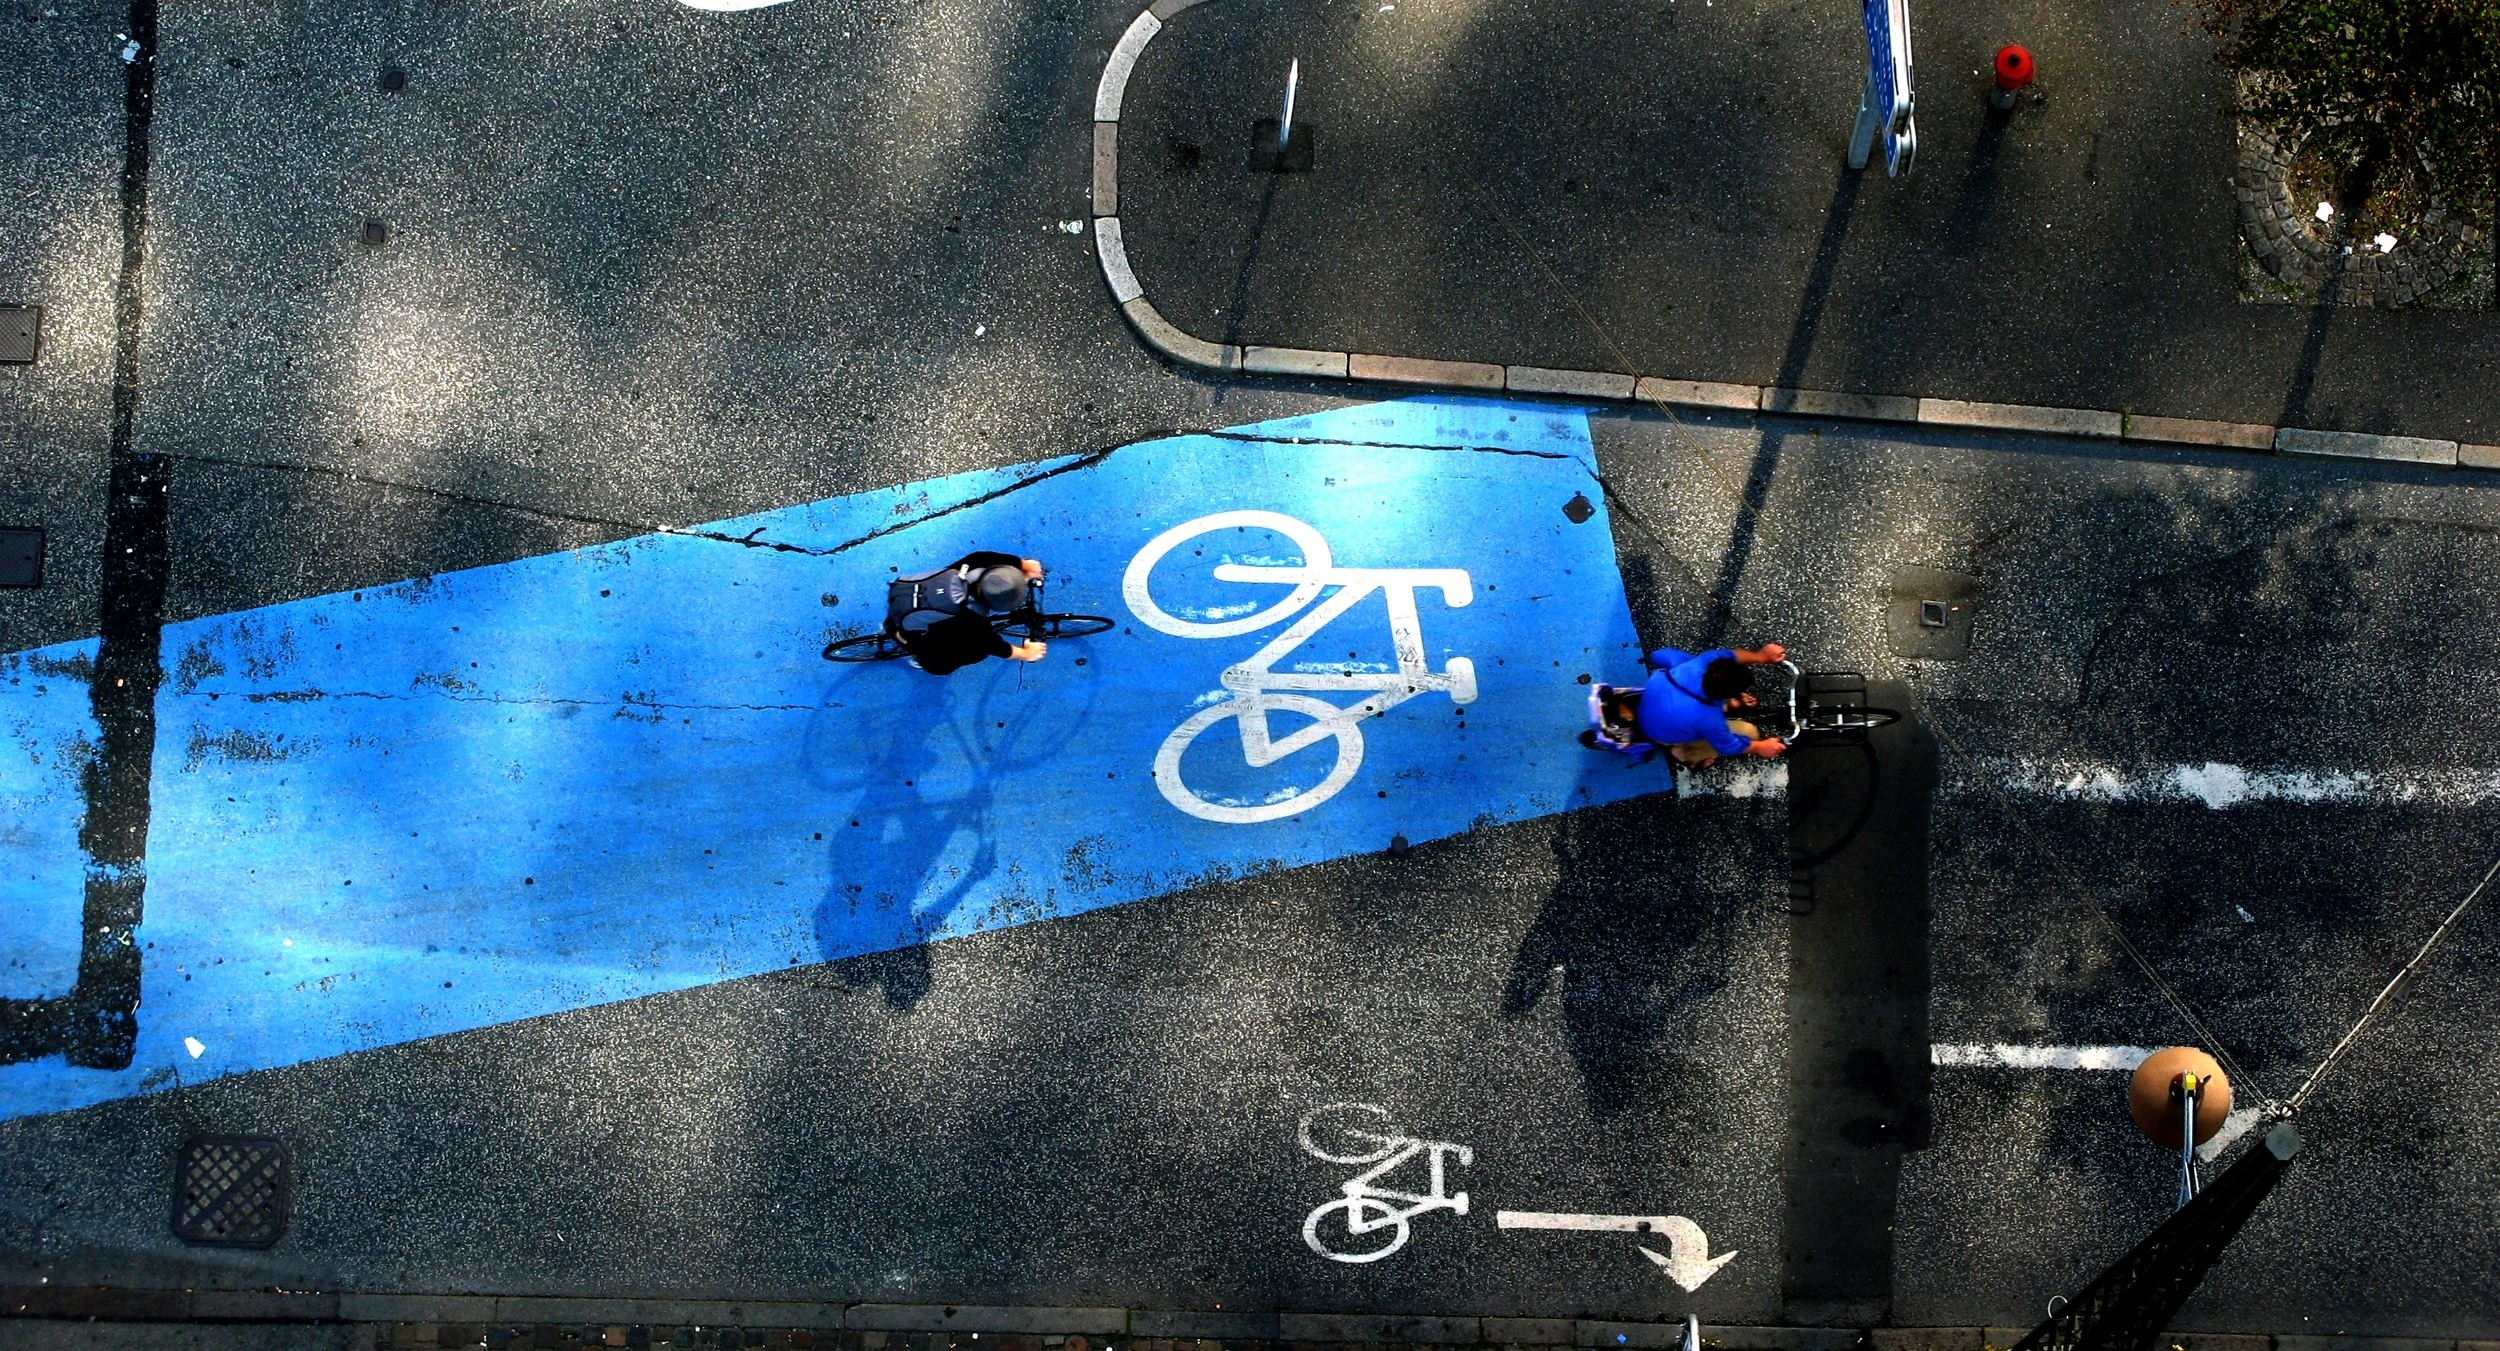 Bicycle Urbanism by Design - Understanding the power of design and the bicycle as solutions for liveable cities